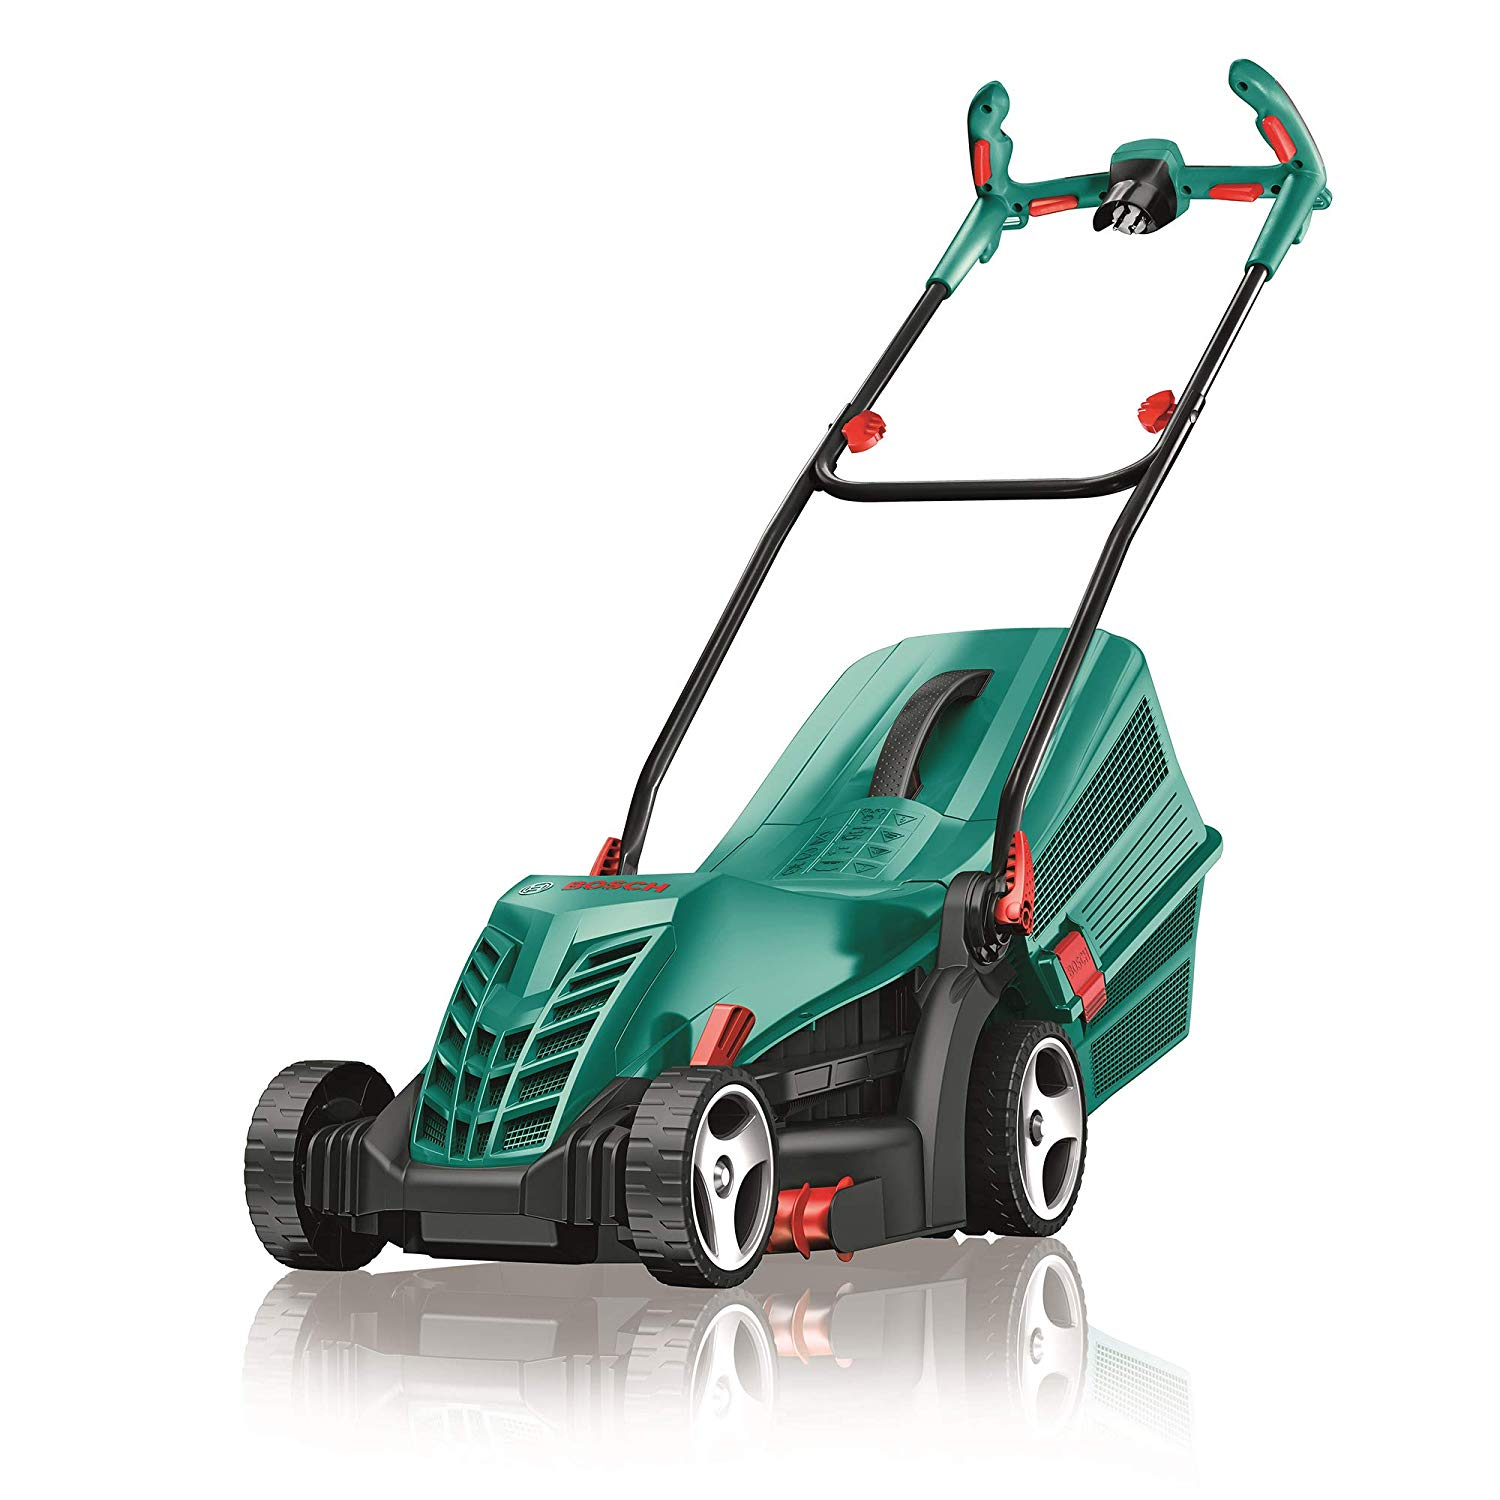 Mowers & Outdoor Power Tools